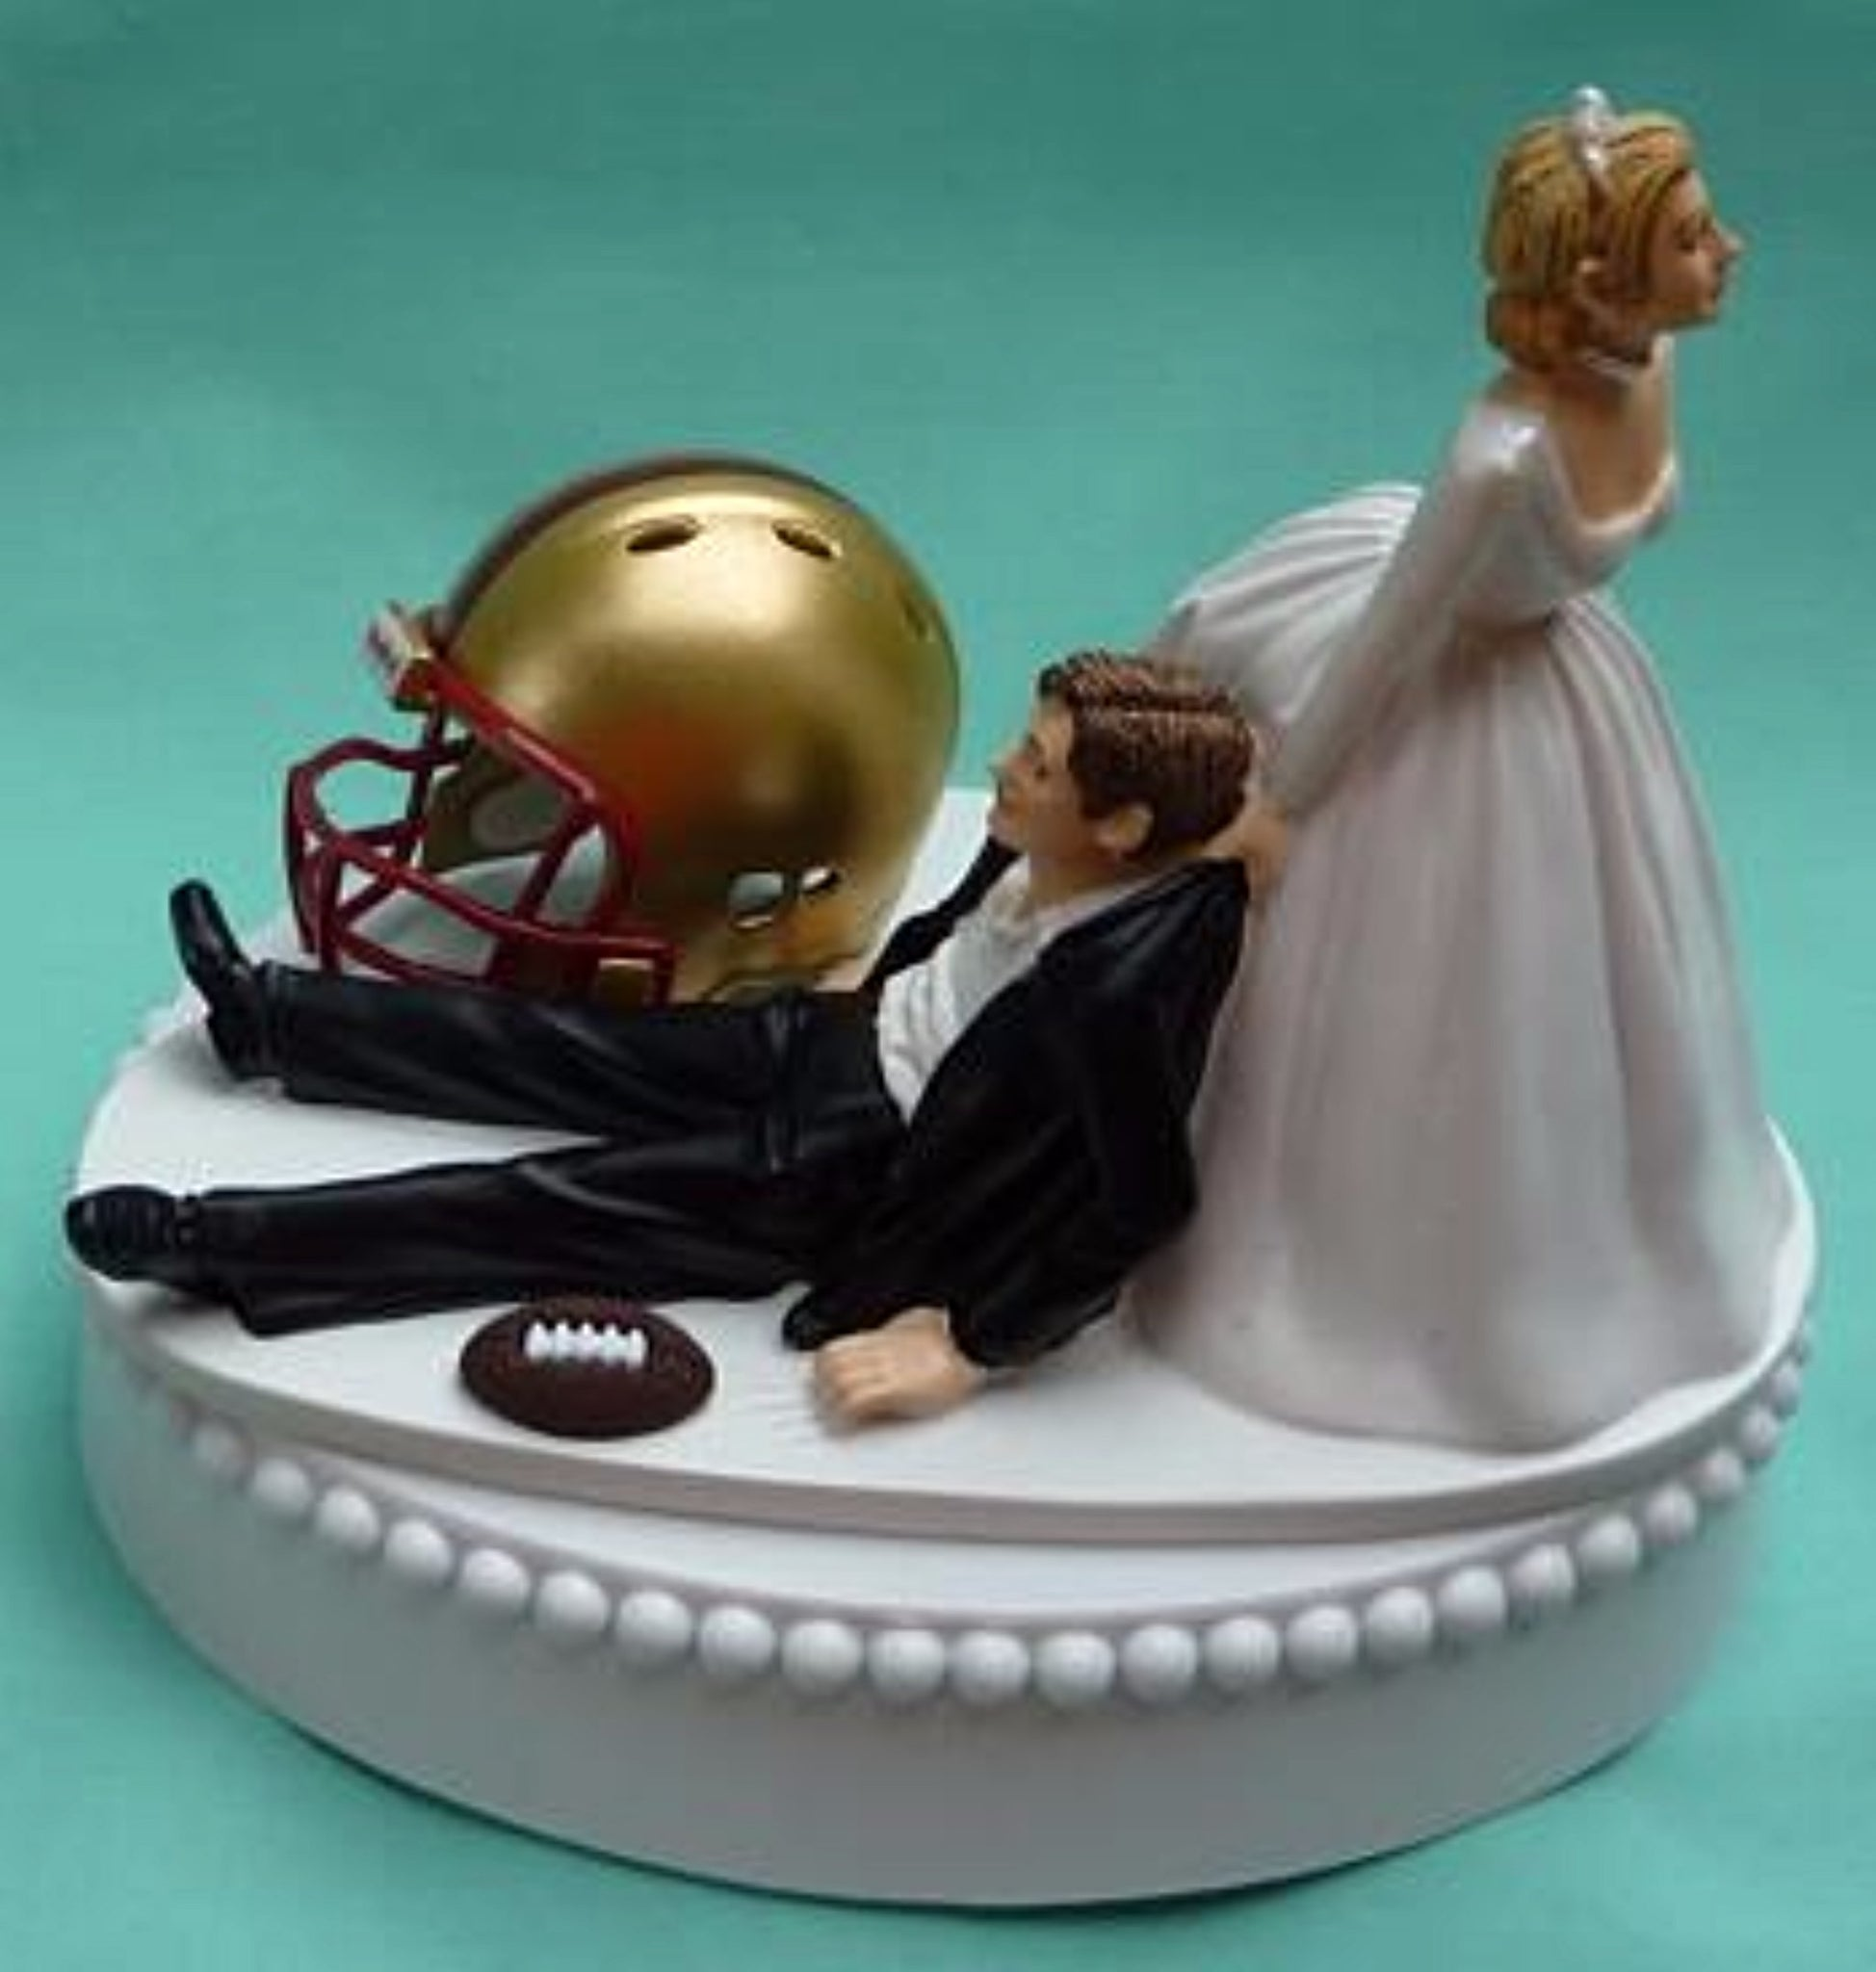 Boston College wedding cake topper BC Eagles football humorous sports fans fun bride drags groom sporty reception gift FunWeddingThings.com